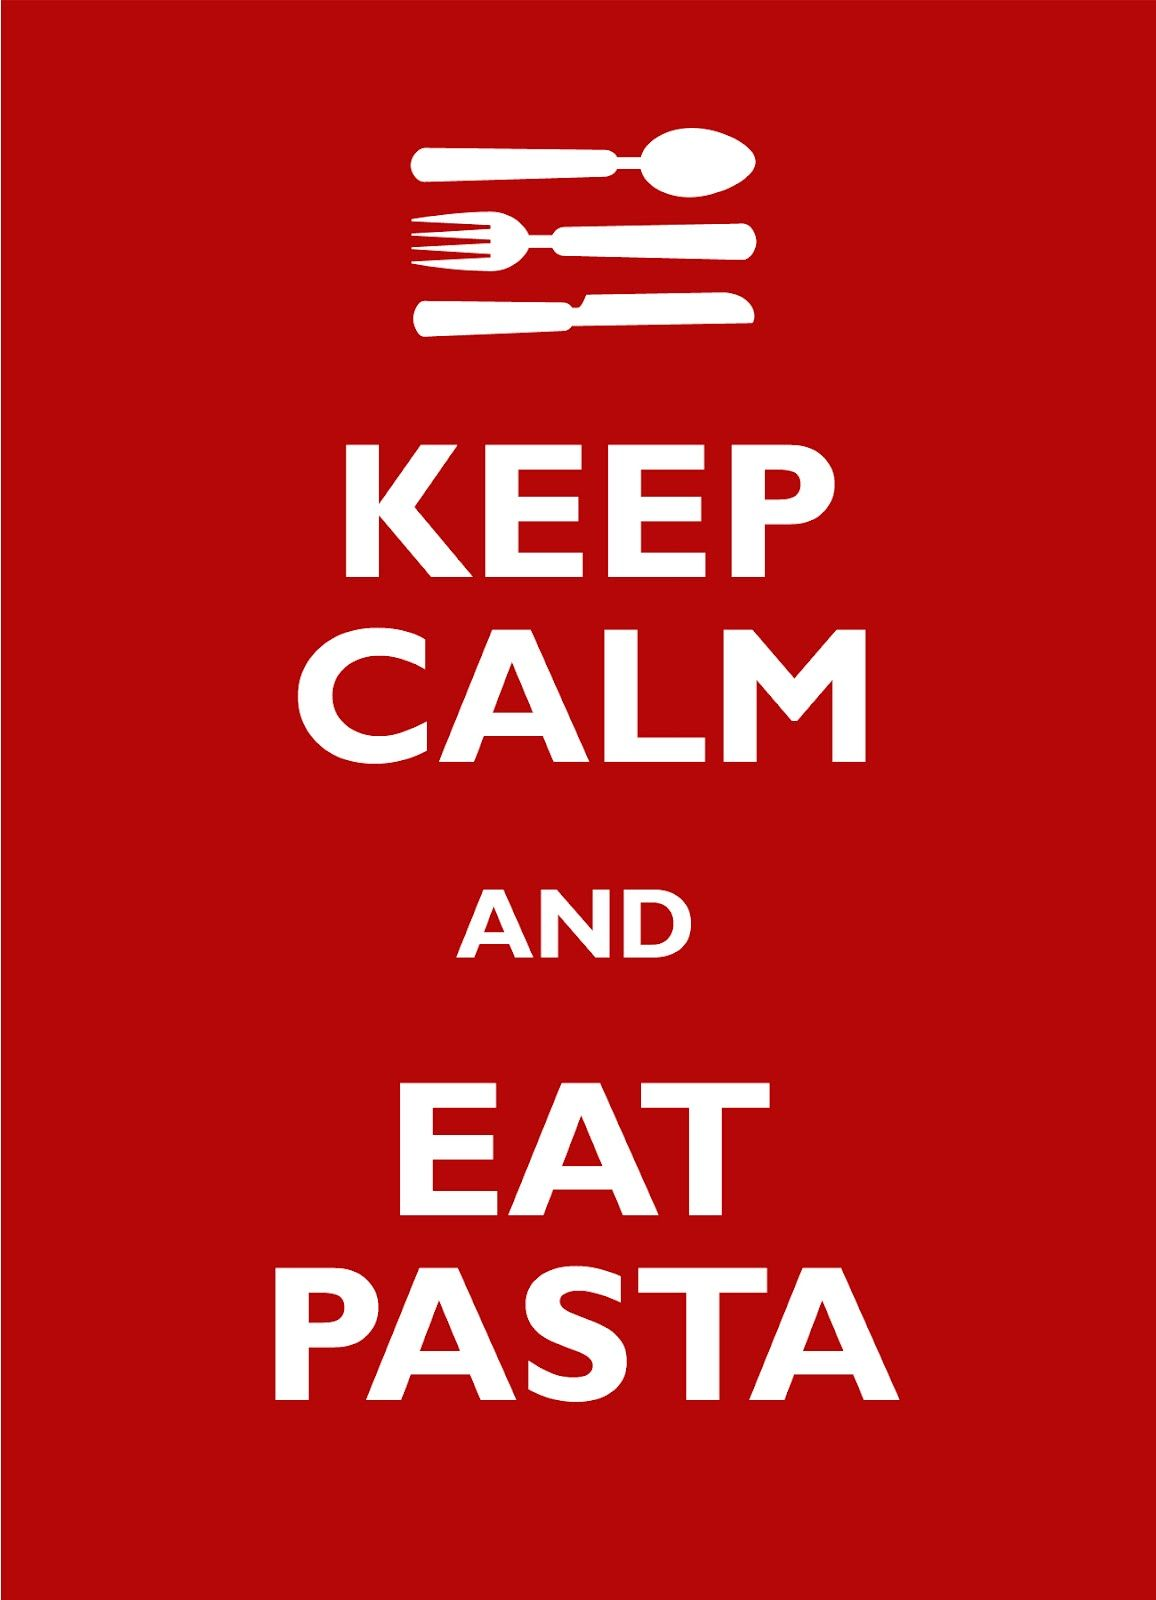 Italian Love Quotes Pasta Fits My Funny Bone Keep Calm And Eat Pastaenough Said